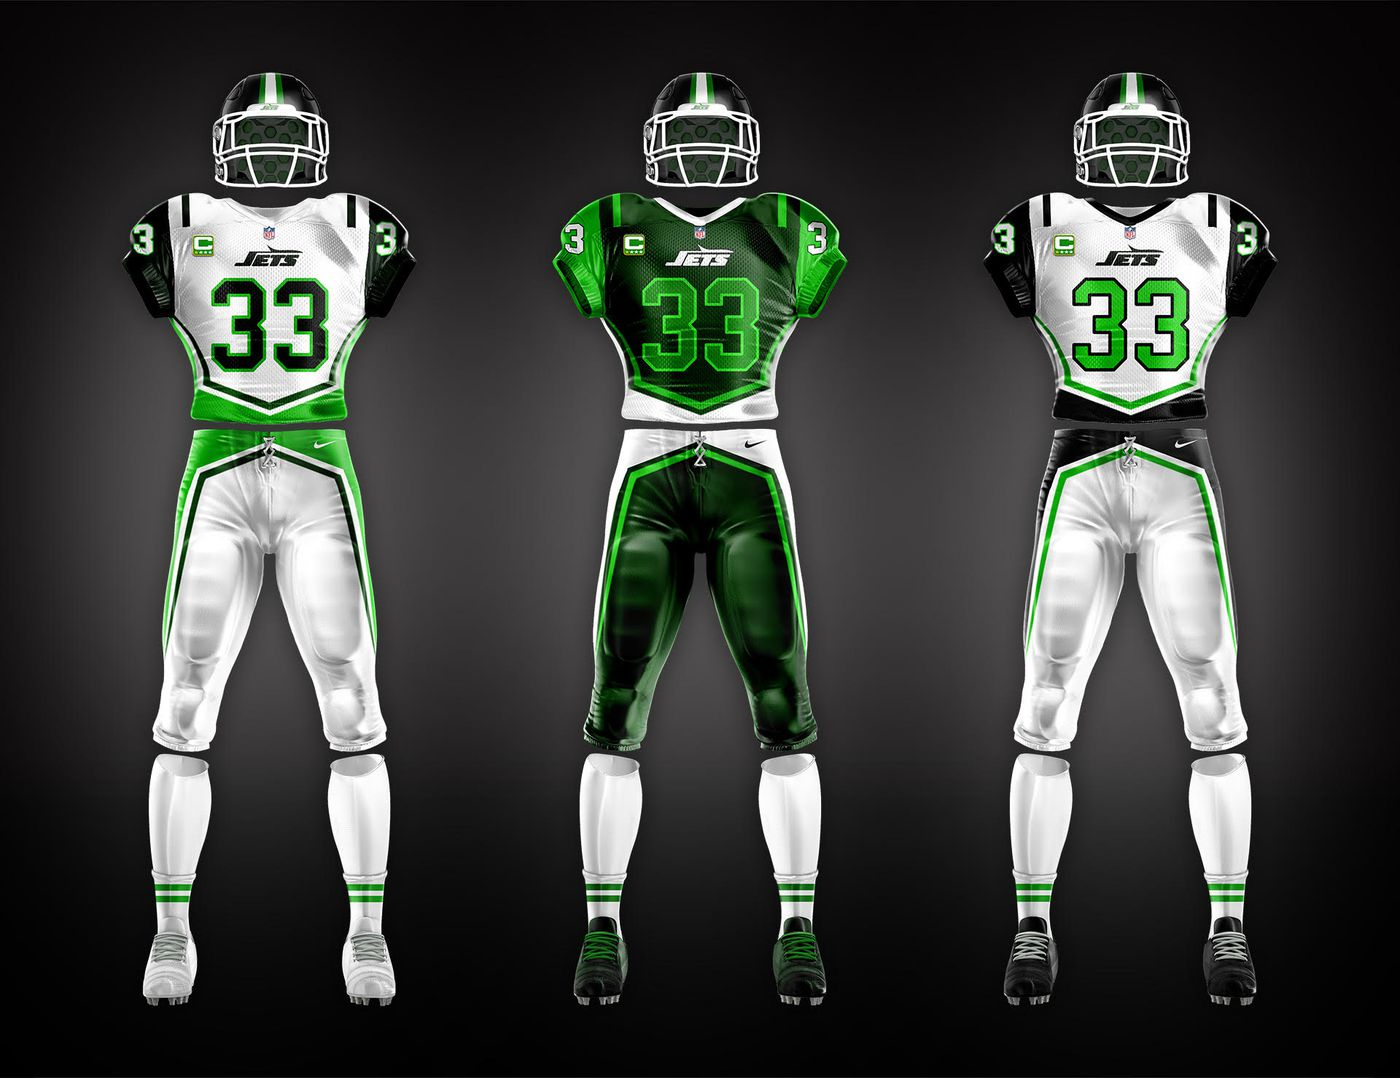 ed8c99e6 New Jets uniforms designed by fans of the team - Gang Green Nation